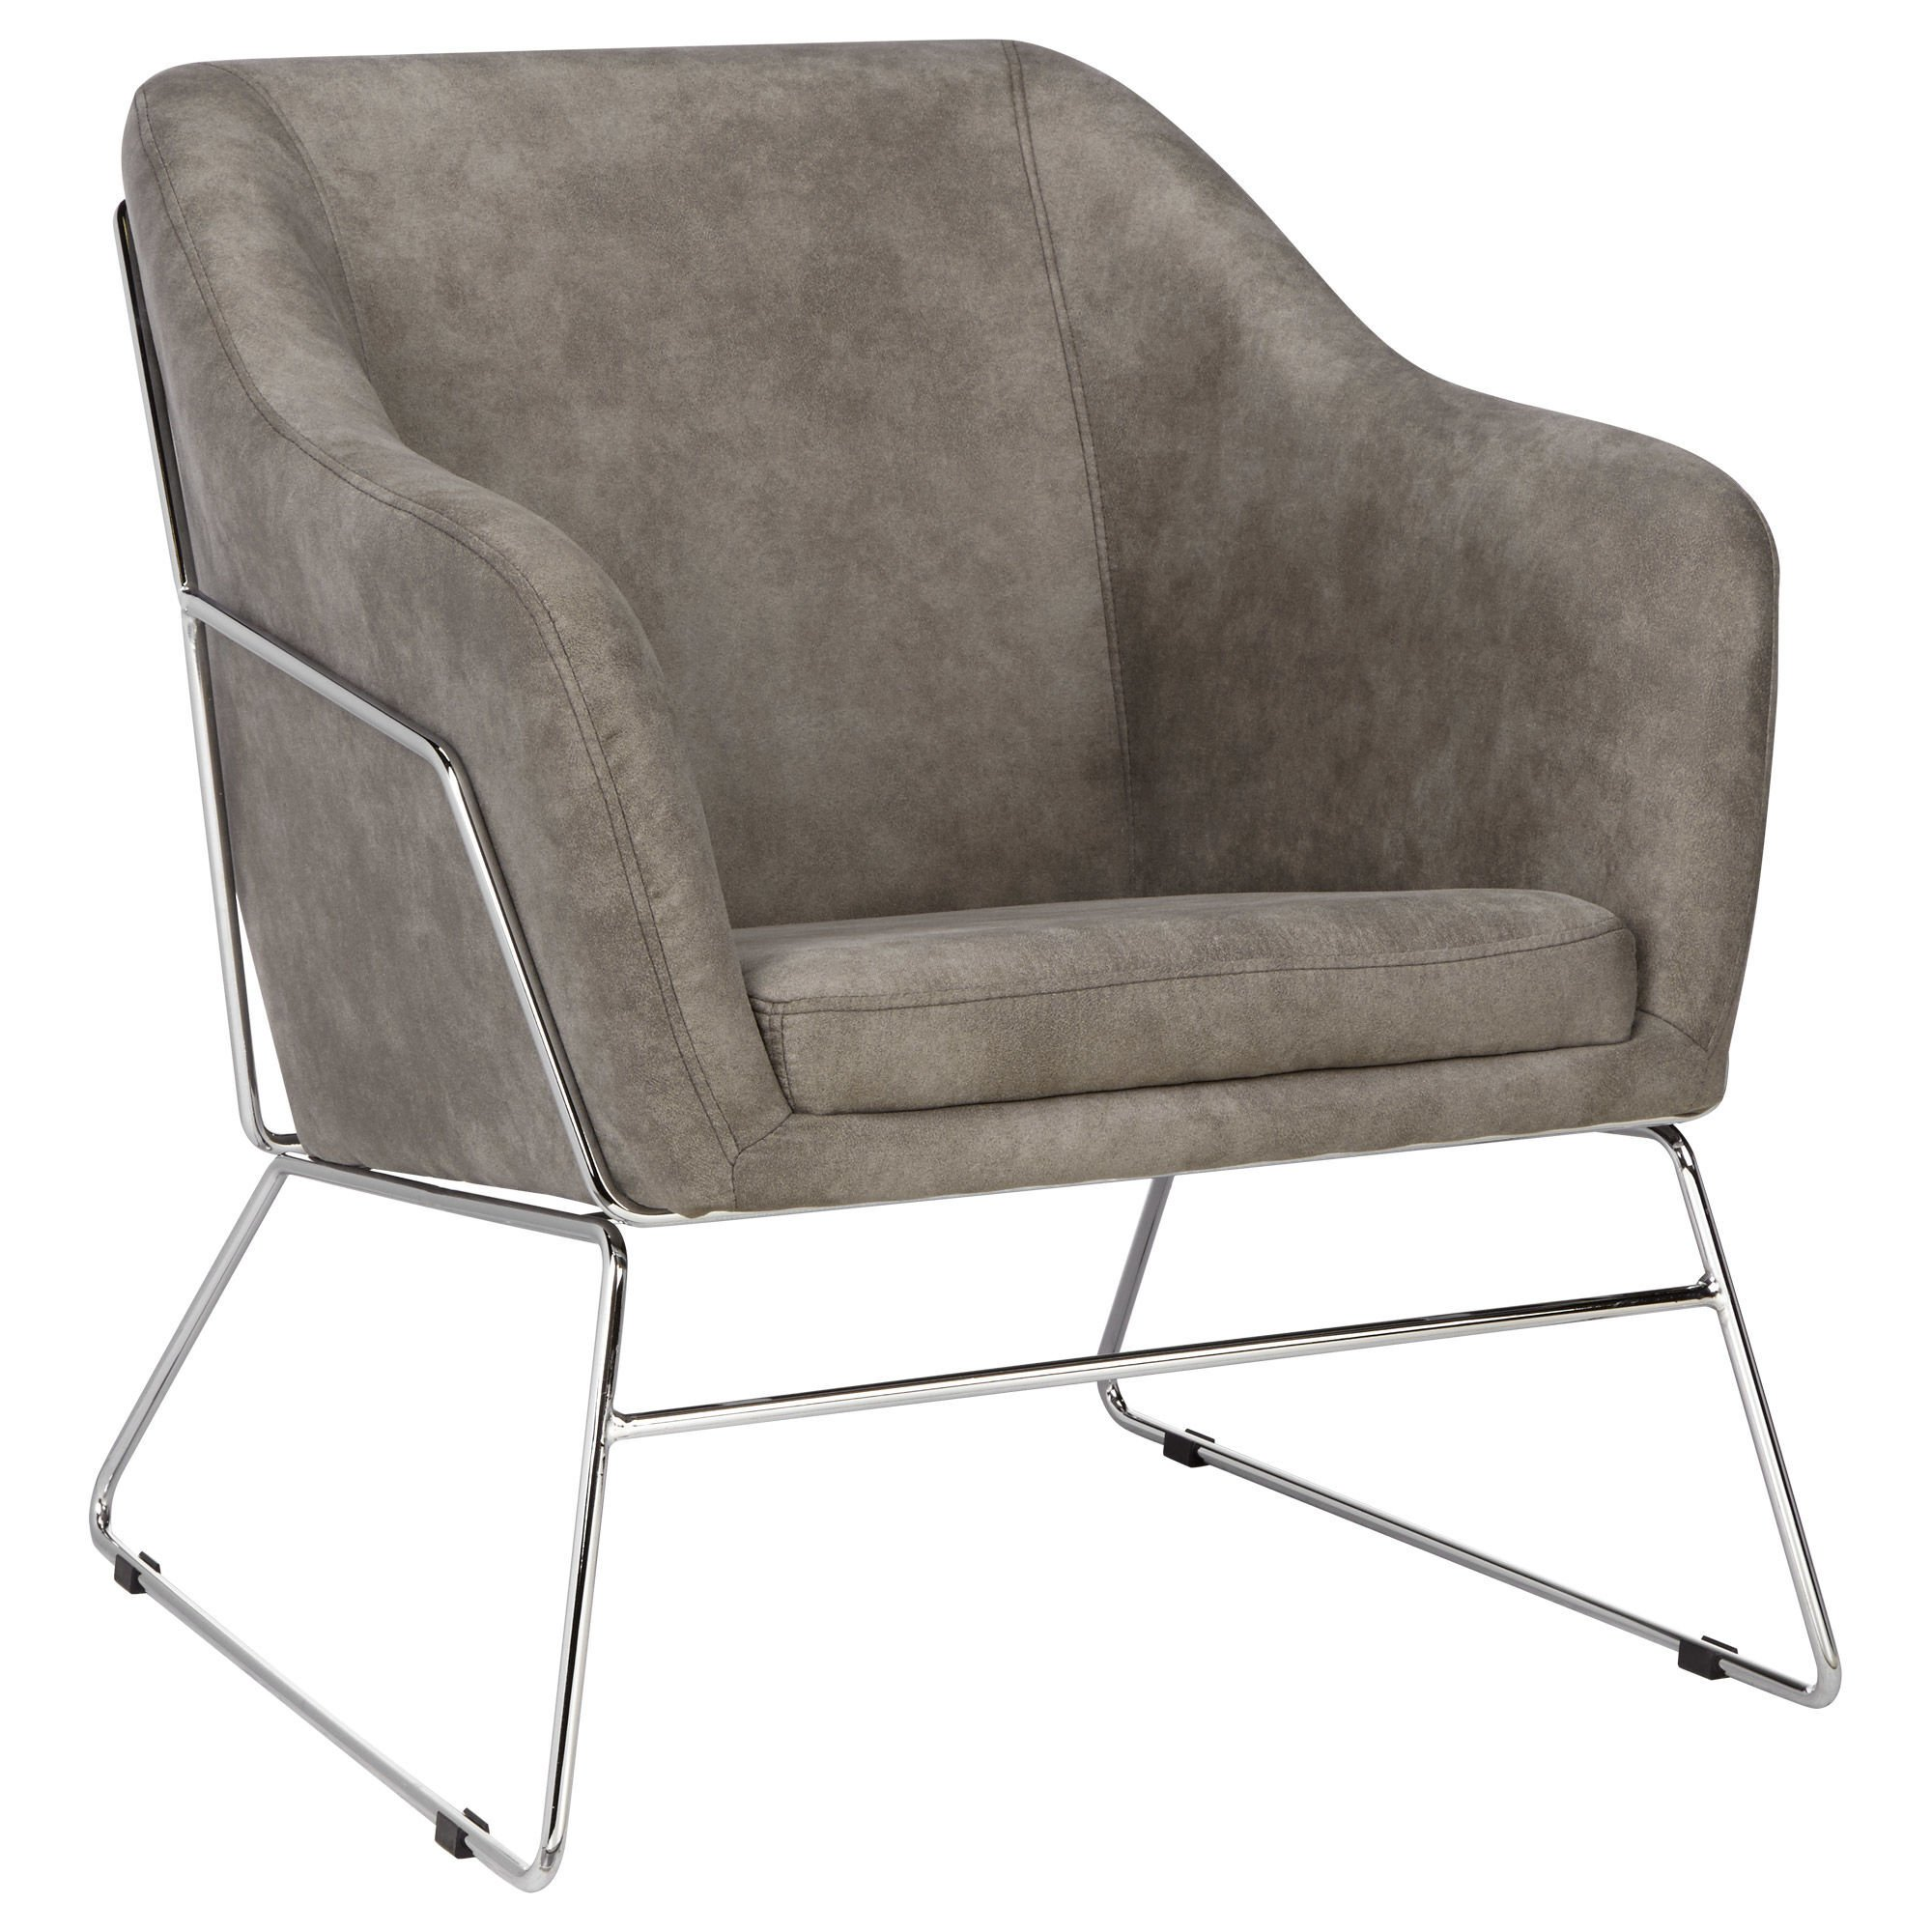 Textured Faux Leather And Metal Lounge Chair